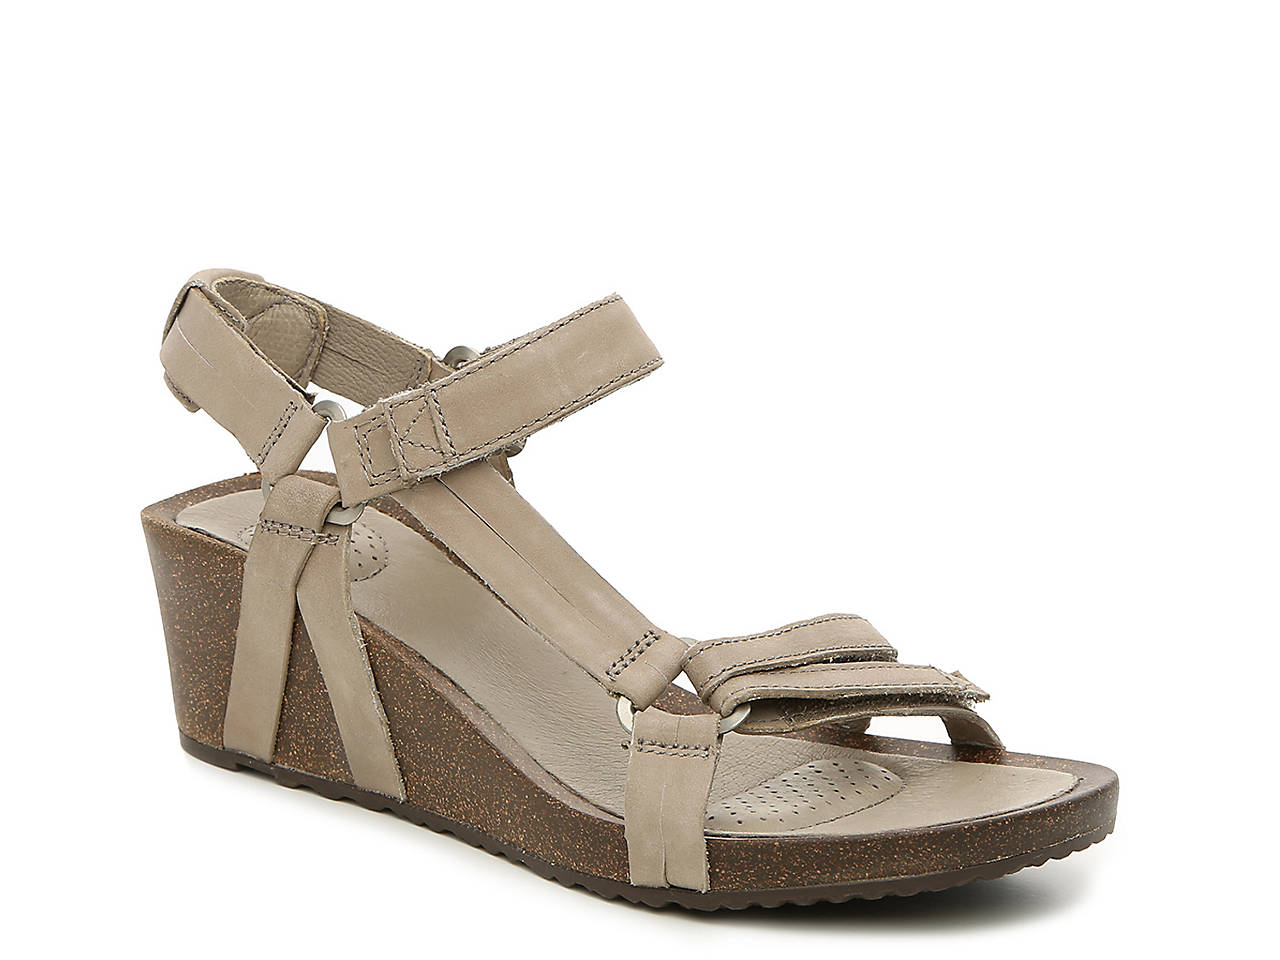 aa761724236a Teva Ysidro Wedge Sandal Women s Shoes